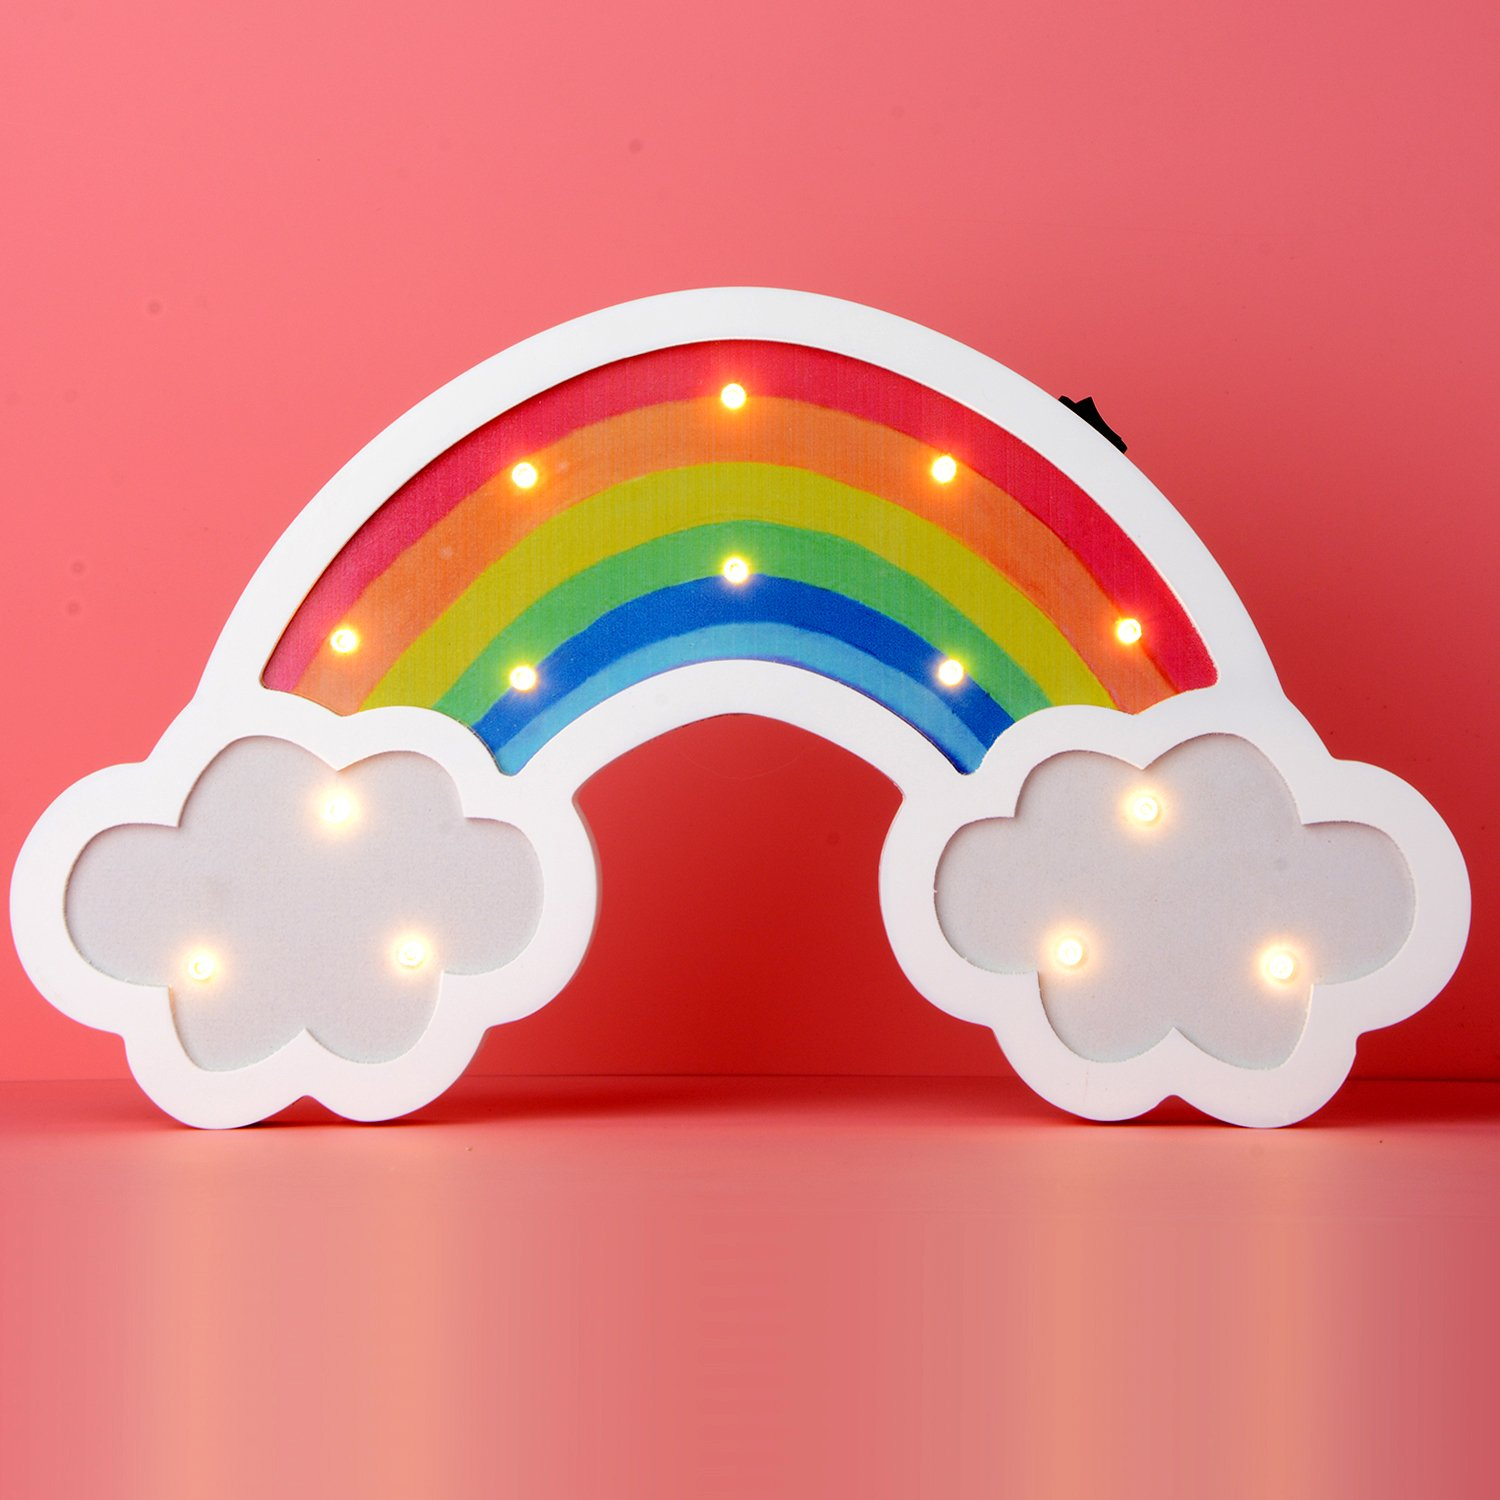 Rainbow Marquee Sign Led Night Light Takefuns Battery Operated Wall Light Decorative Bedsides Lamp for Girls Boys Christmas Home Decor(Rainbow)